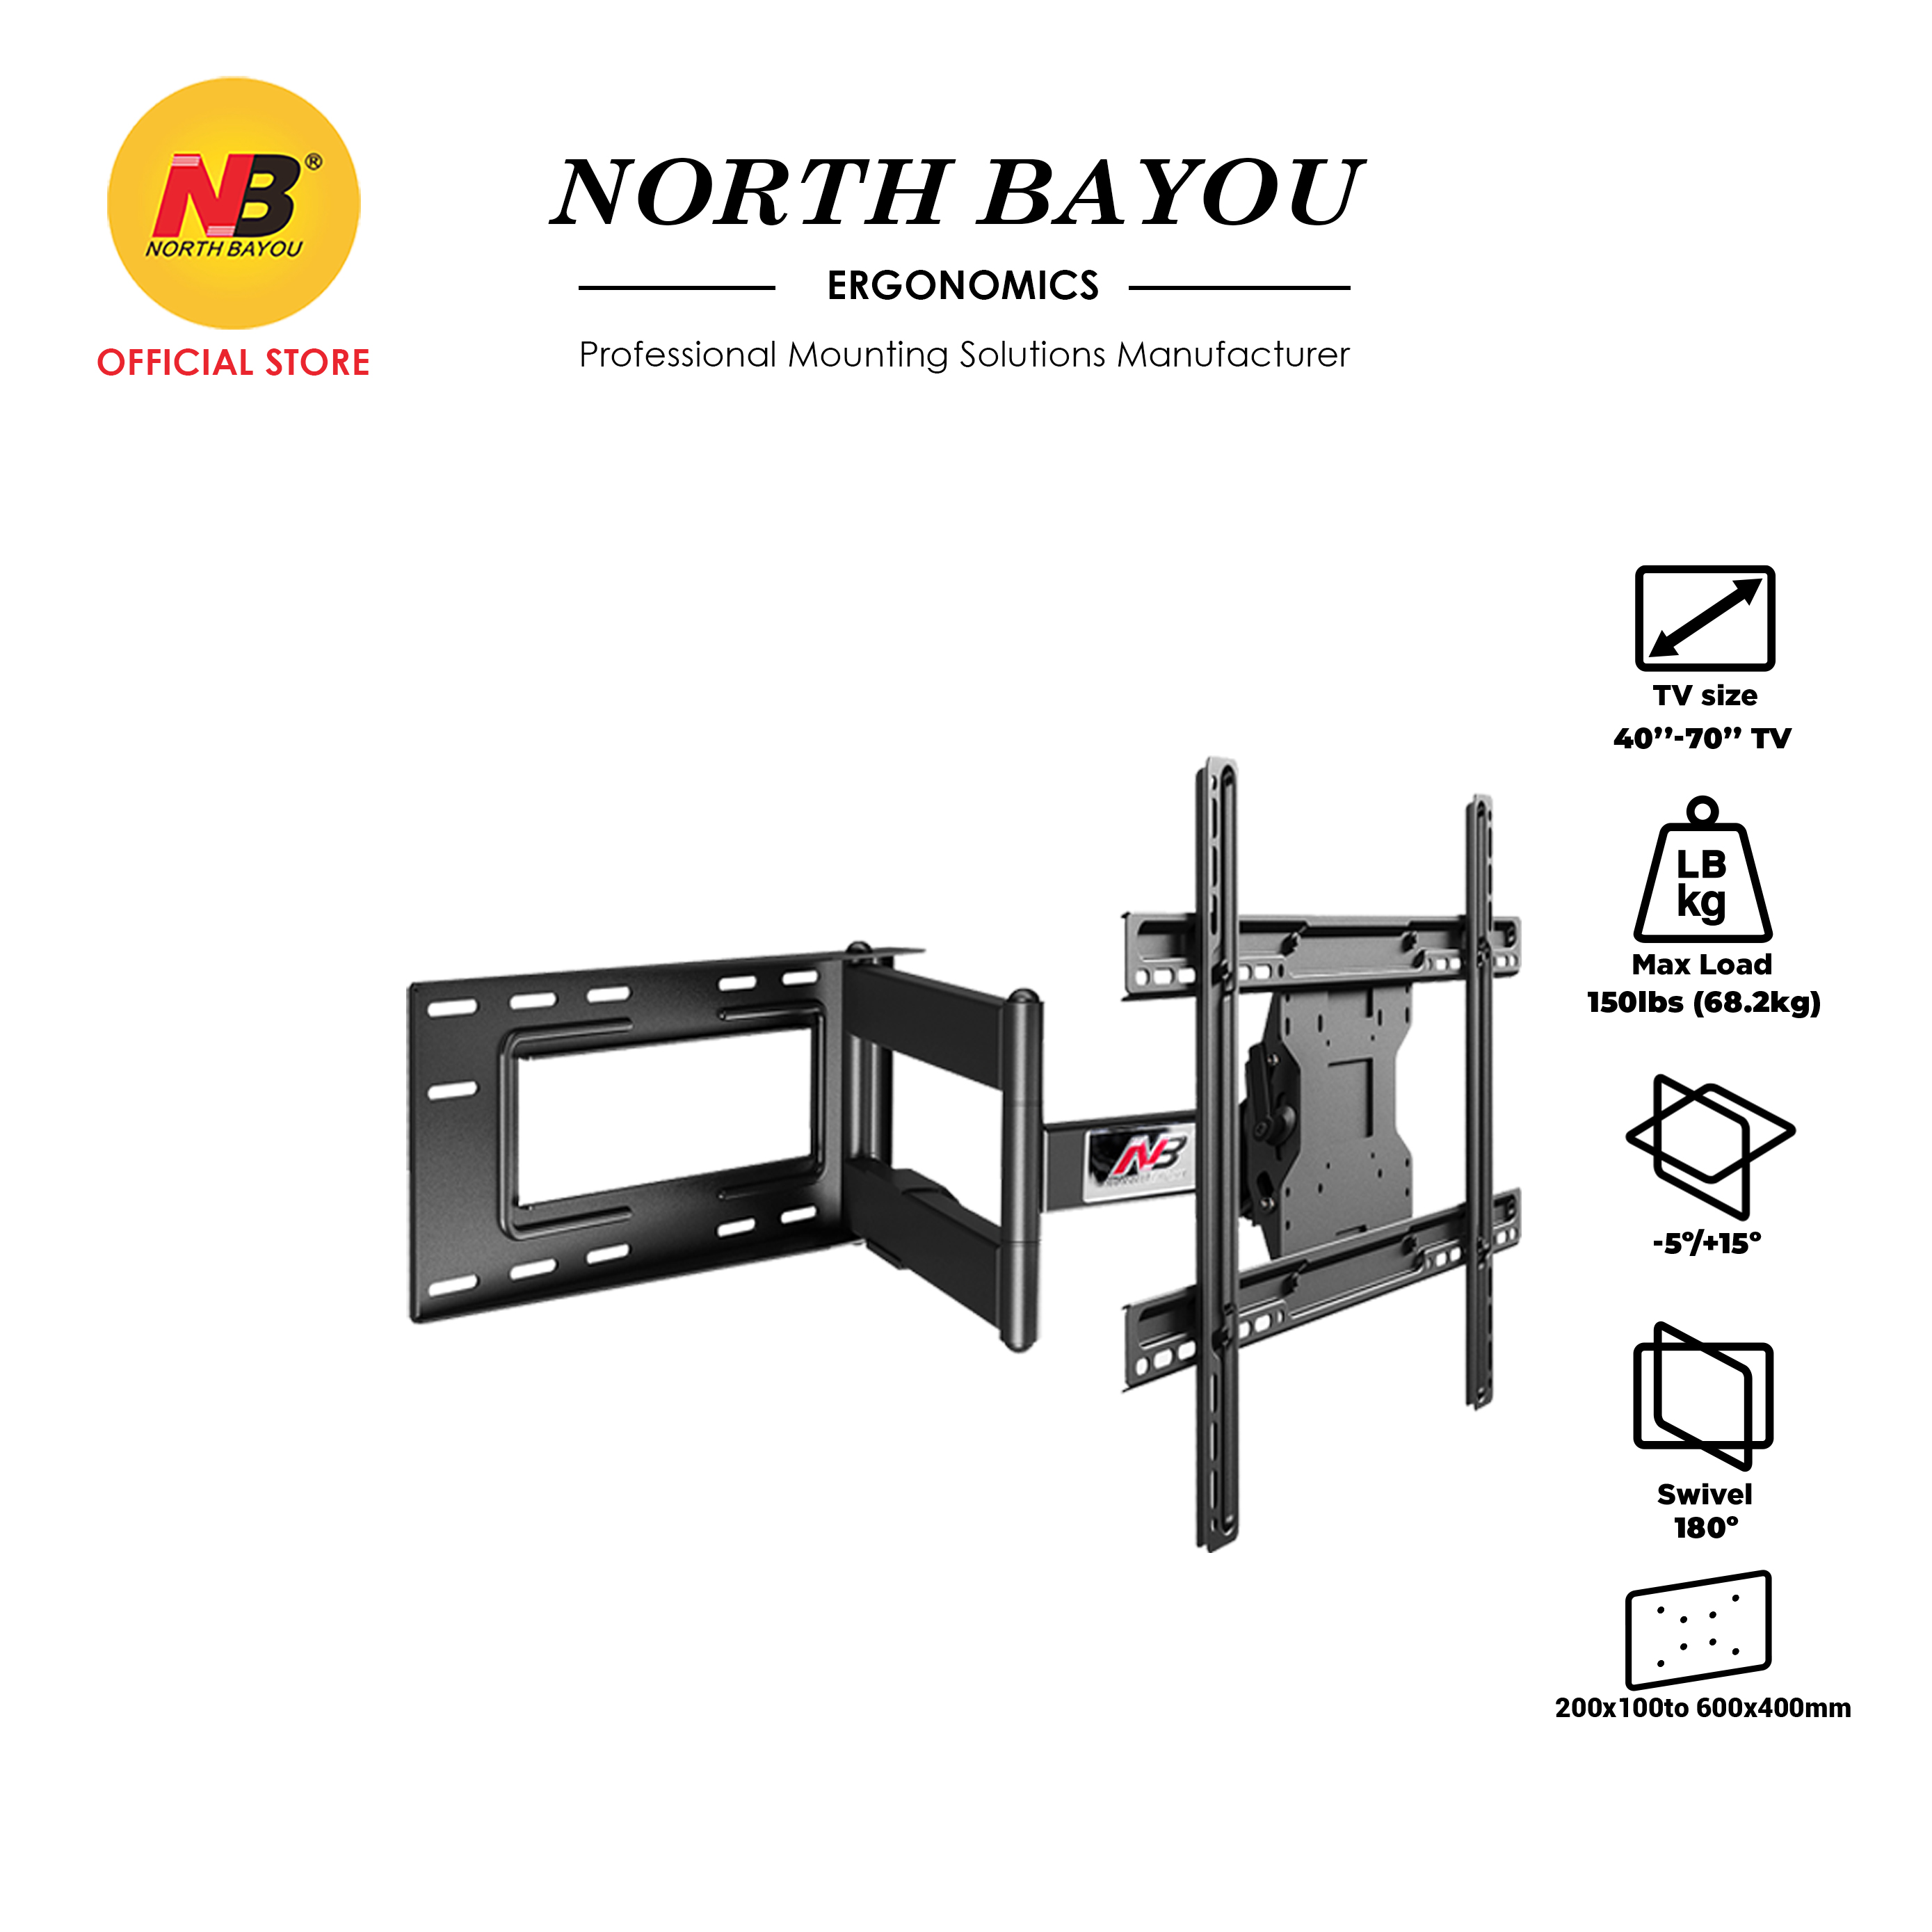 """NB North Bayou NBSP2 TV 180 Rotation Cantilever Mount Fit 40"""" To 70"""" LCD LED Flat Panel TV Screens"""